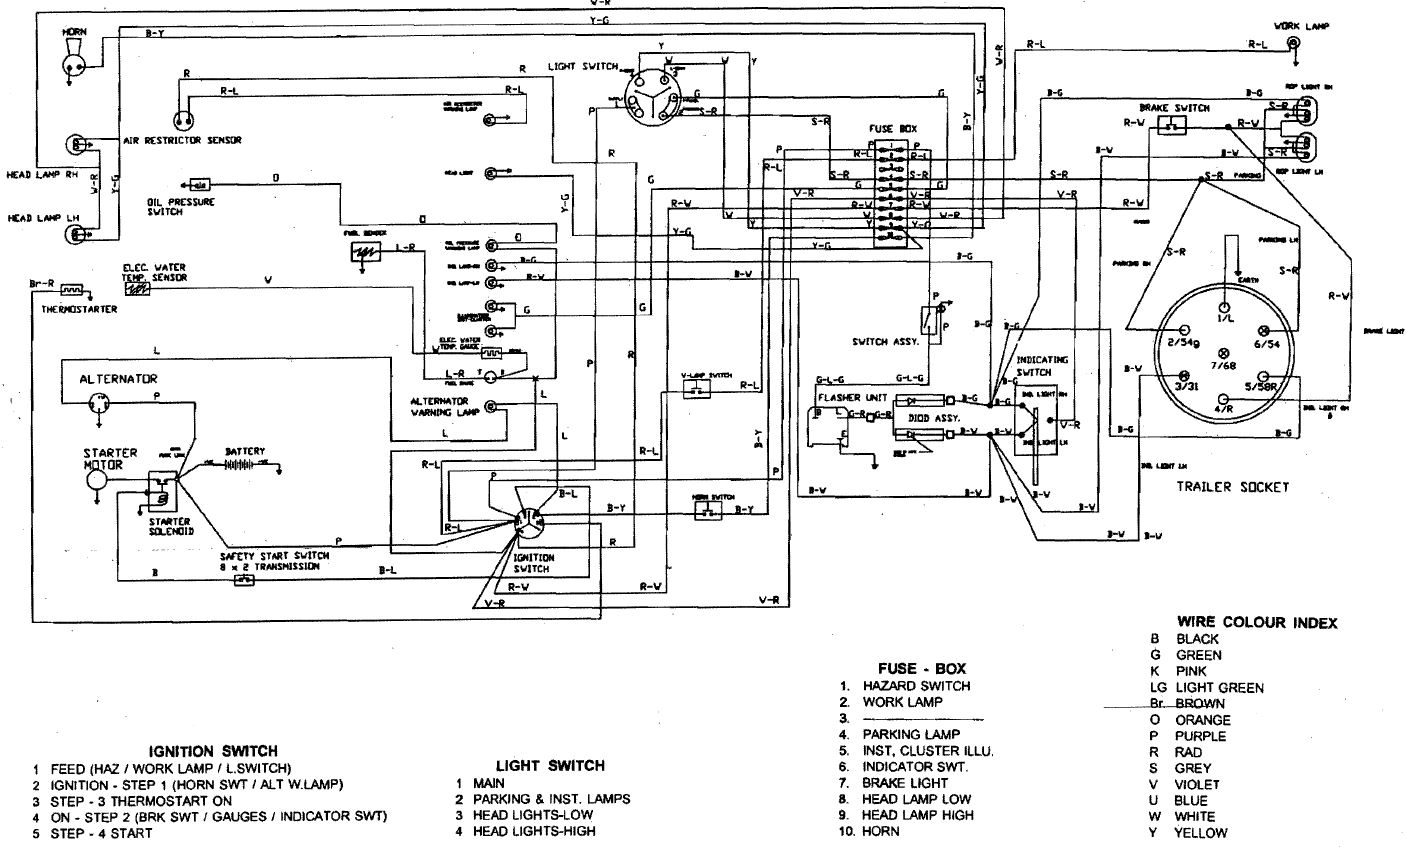 John Deere L130 Safety Switch Wiring Diagrams - Wiring